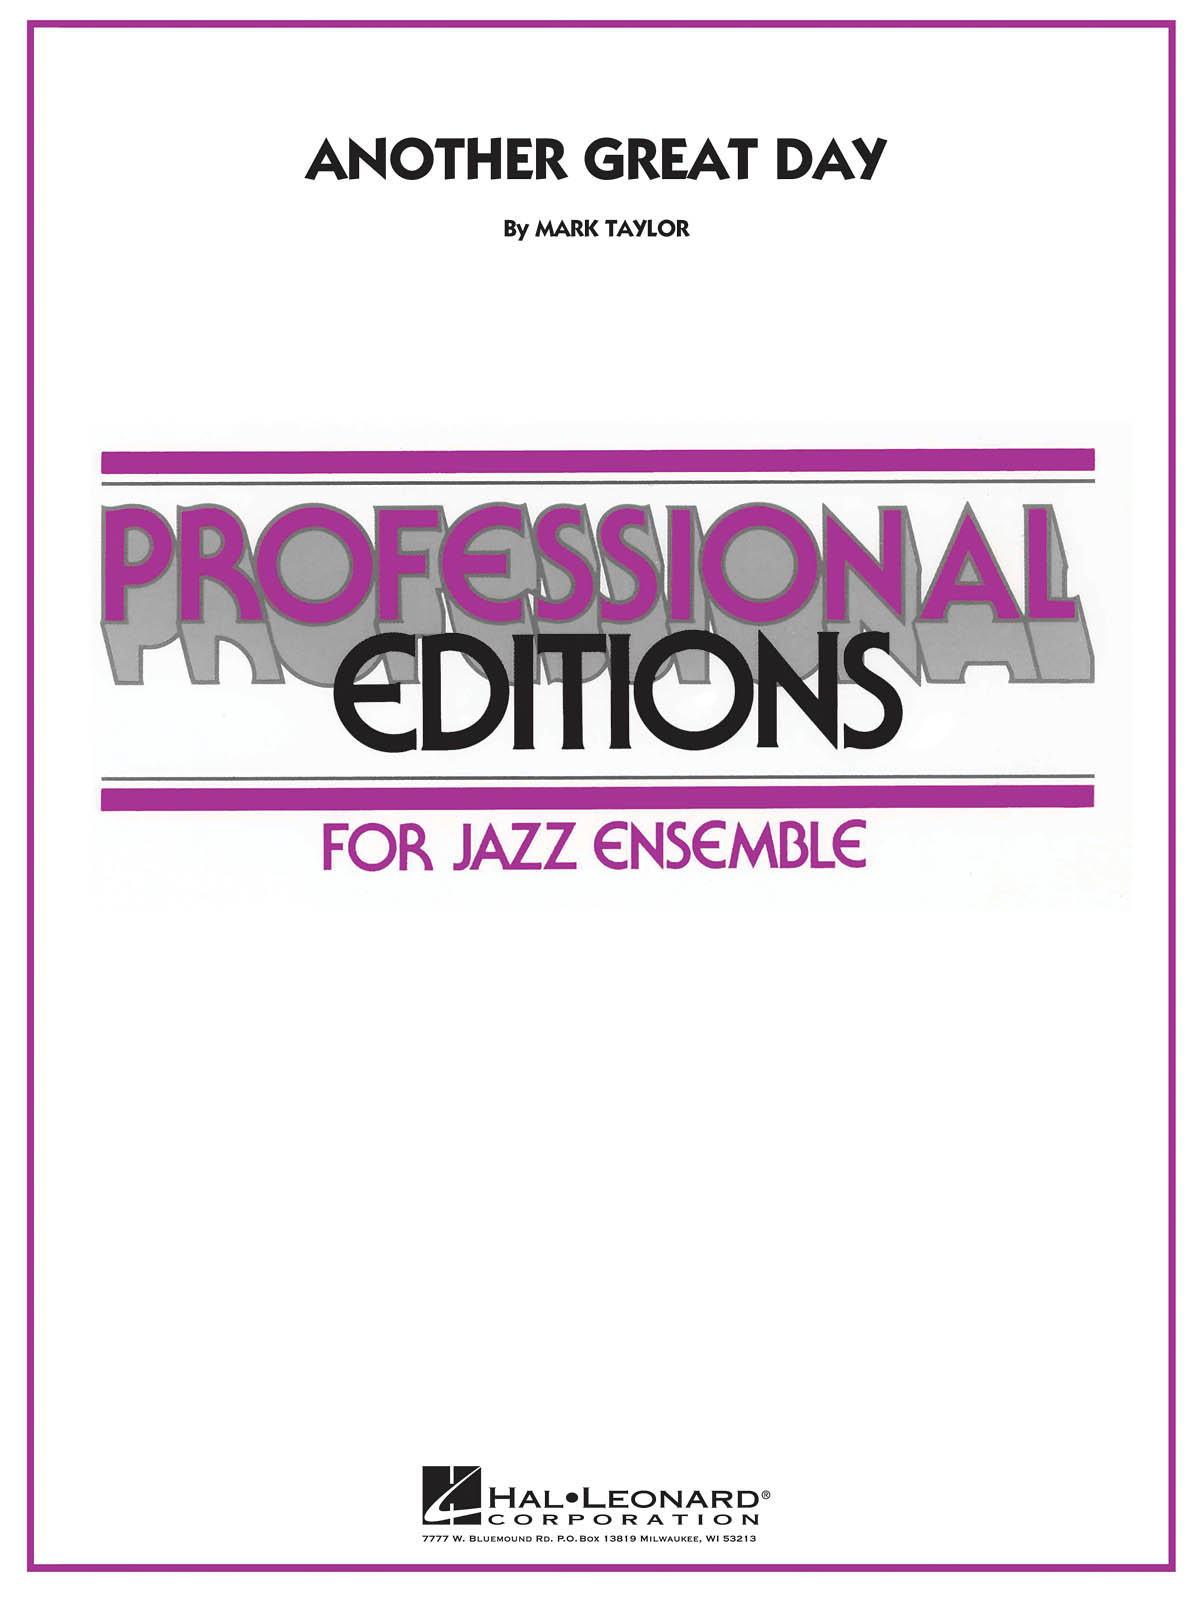 Another Great Day: Professional Editions for Jazz Ensemble